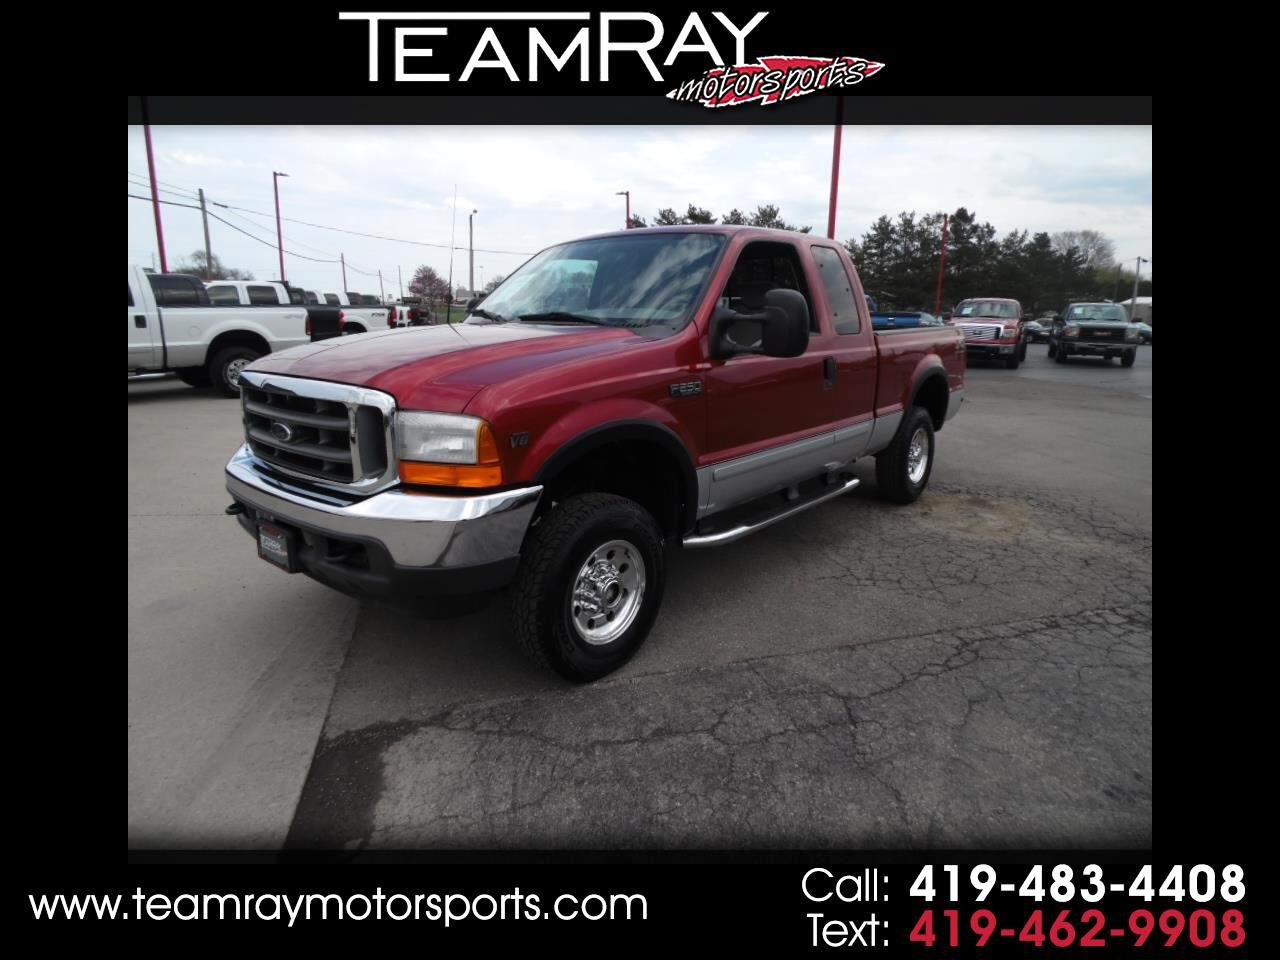 2001 Ford Super Duty F-250 Supercab 142